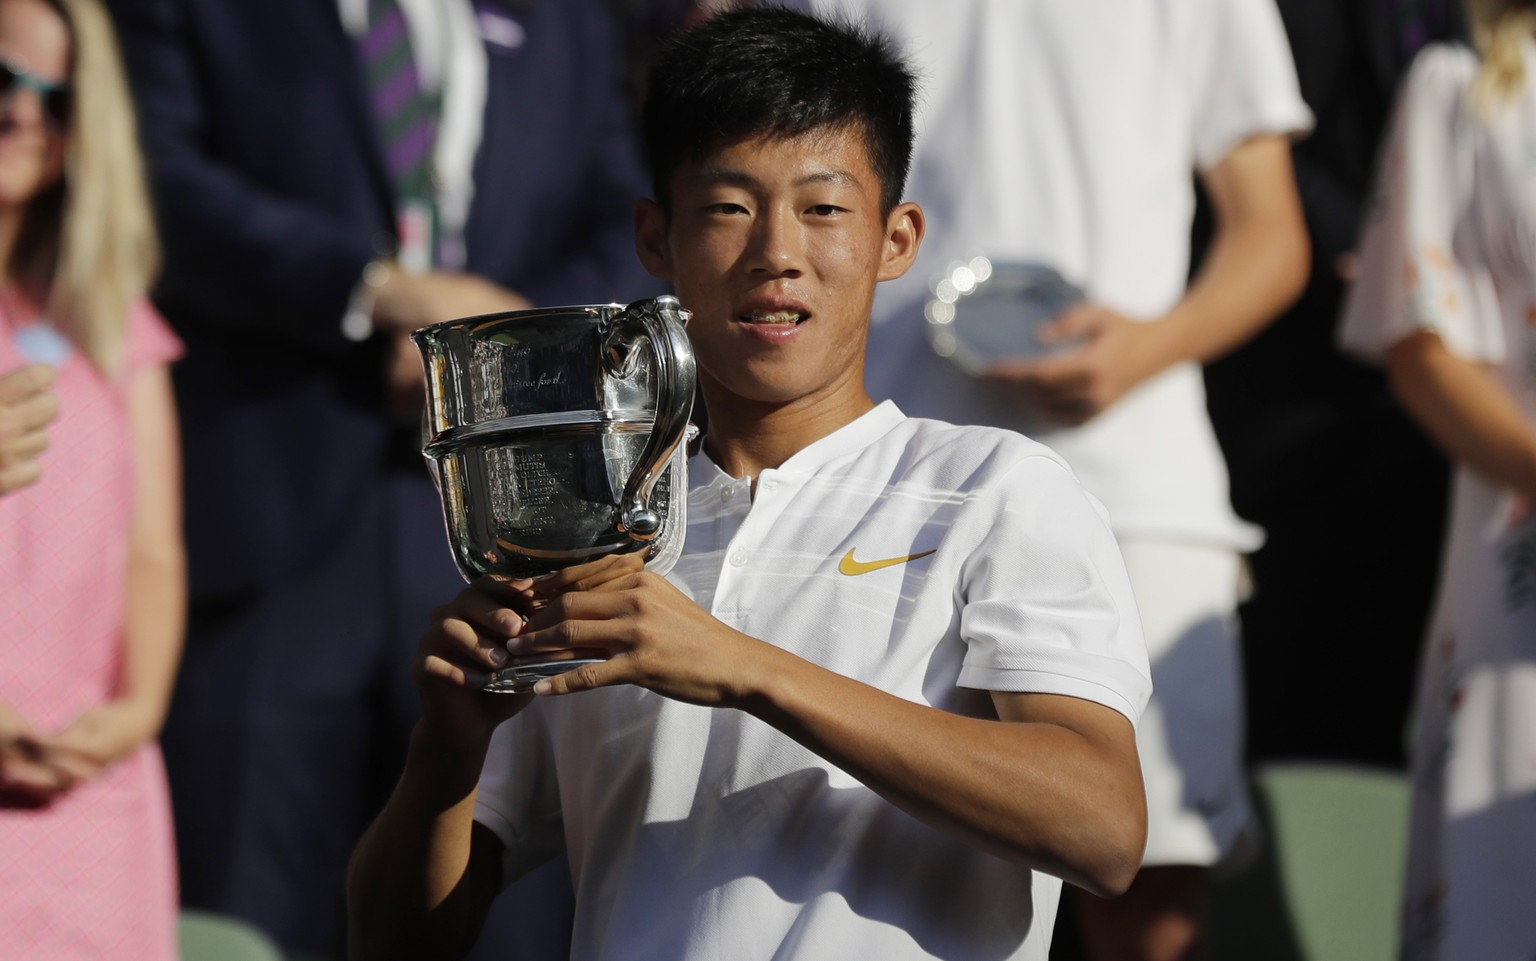 Tseng Chun Hsin of Taiwan kisses the trophy after defeating Jack Draper of Britain in the boys' singles final at the Wimbledon Tennis Championships in London, Sunday July 15, 2018. (AP Photo/Ben Curtis)